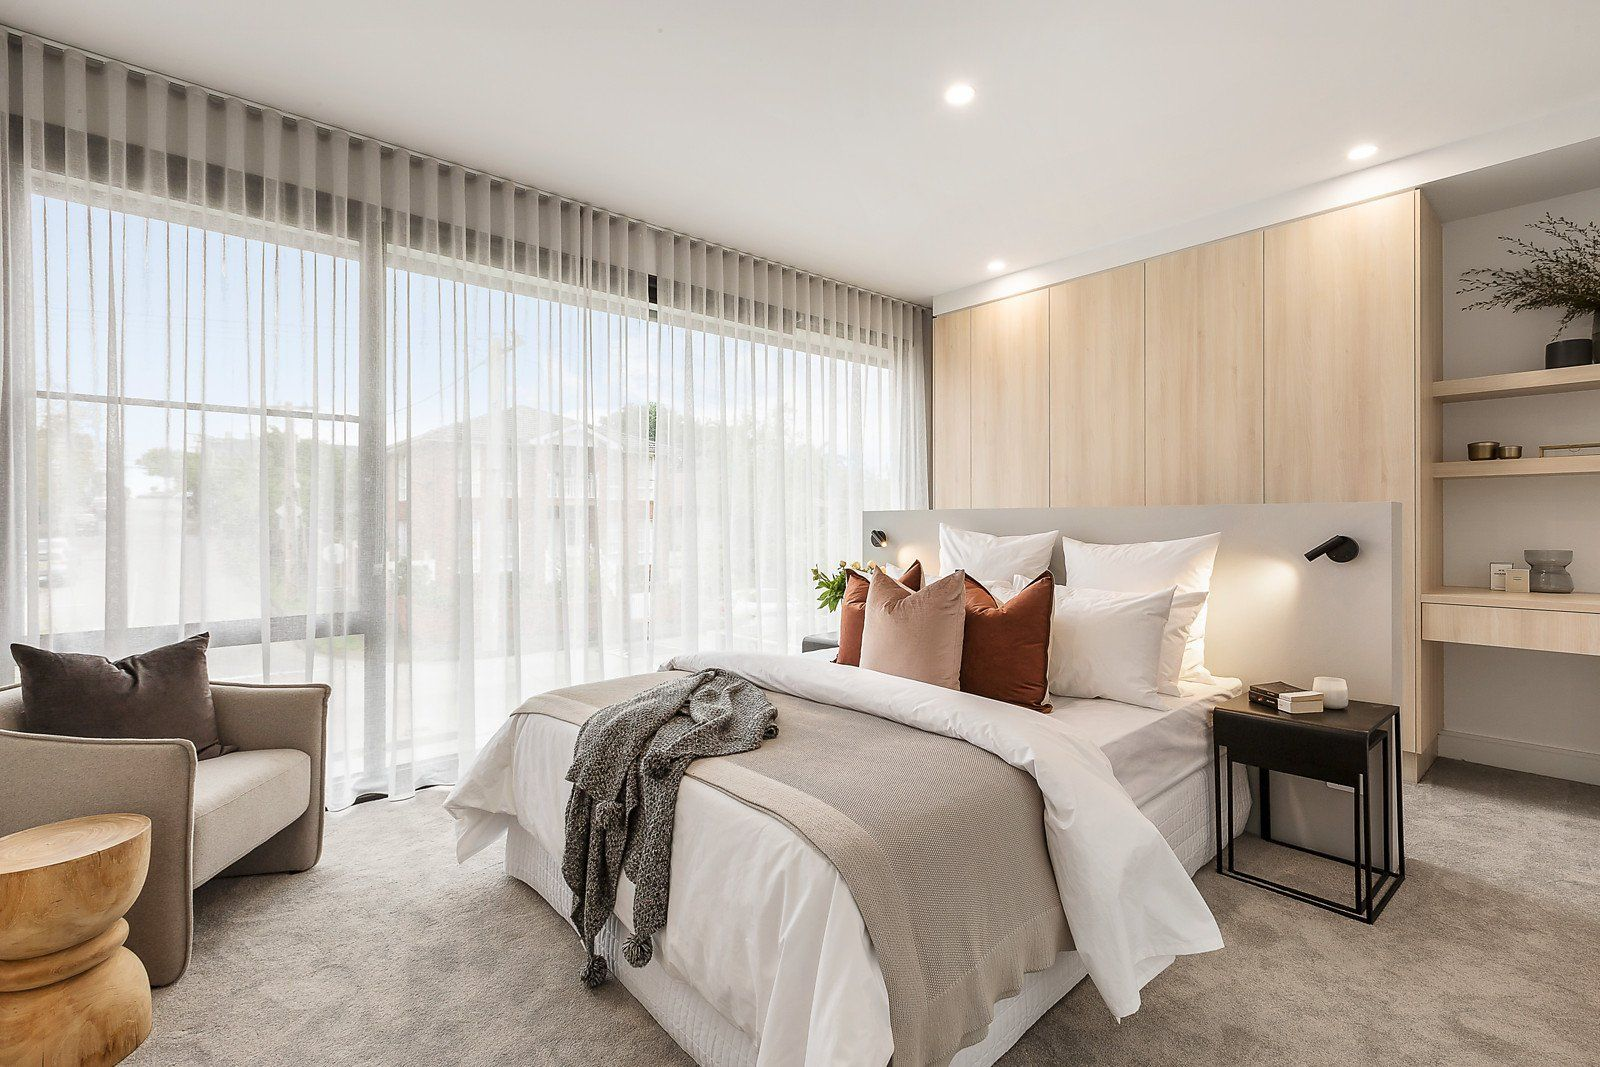 #bedroomstyling #propertystylingmelbourne #melbournepropertystyling #propertystylistsofmelbourne #velvetcushions #newneutrals #neutral #whitelinen #whitesheets #logstool #builtinheadboard #malvernproperty